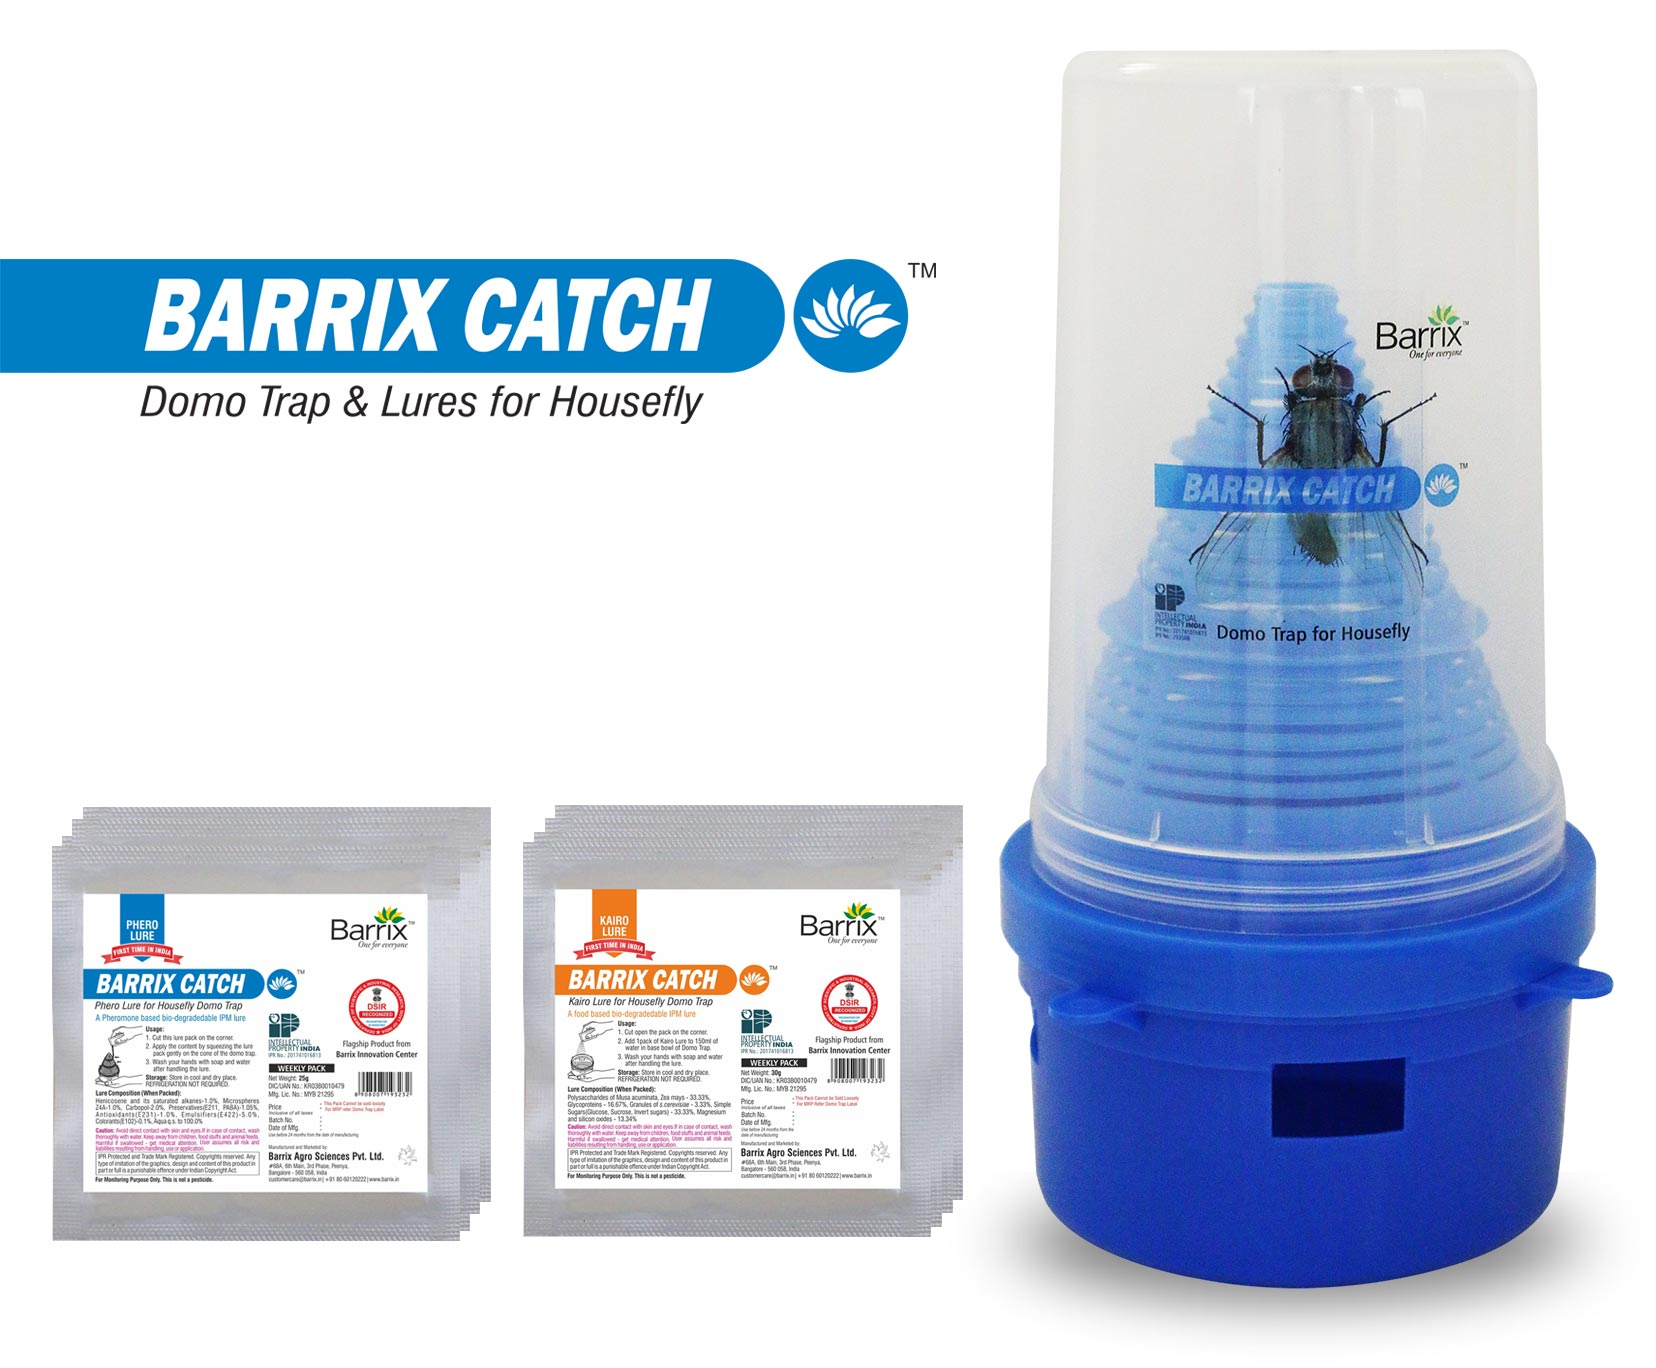 Barrix Catch - Domo trap for housefly